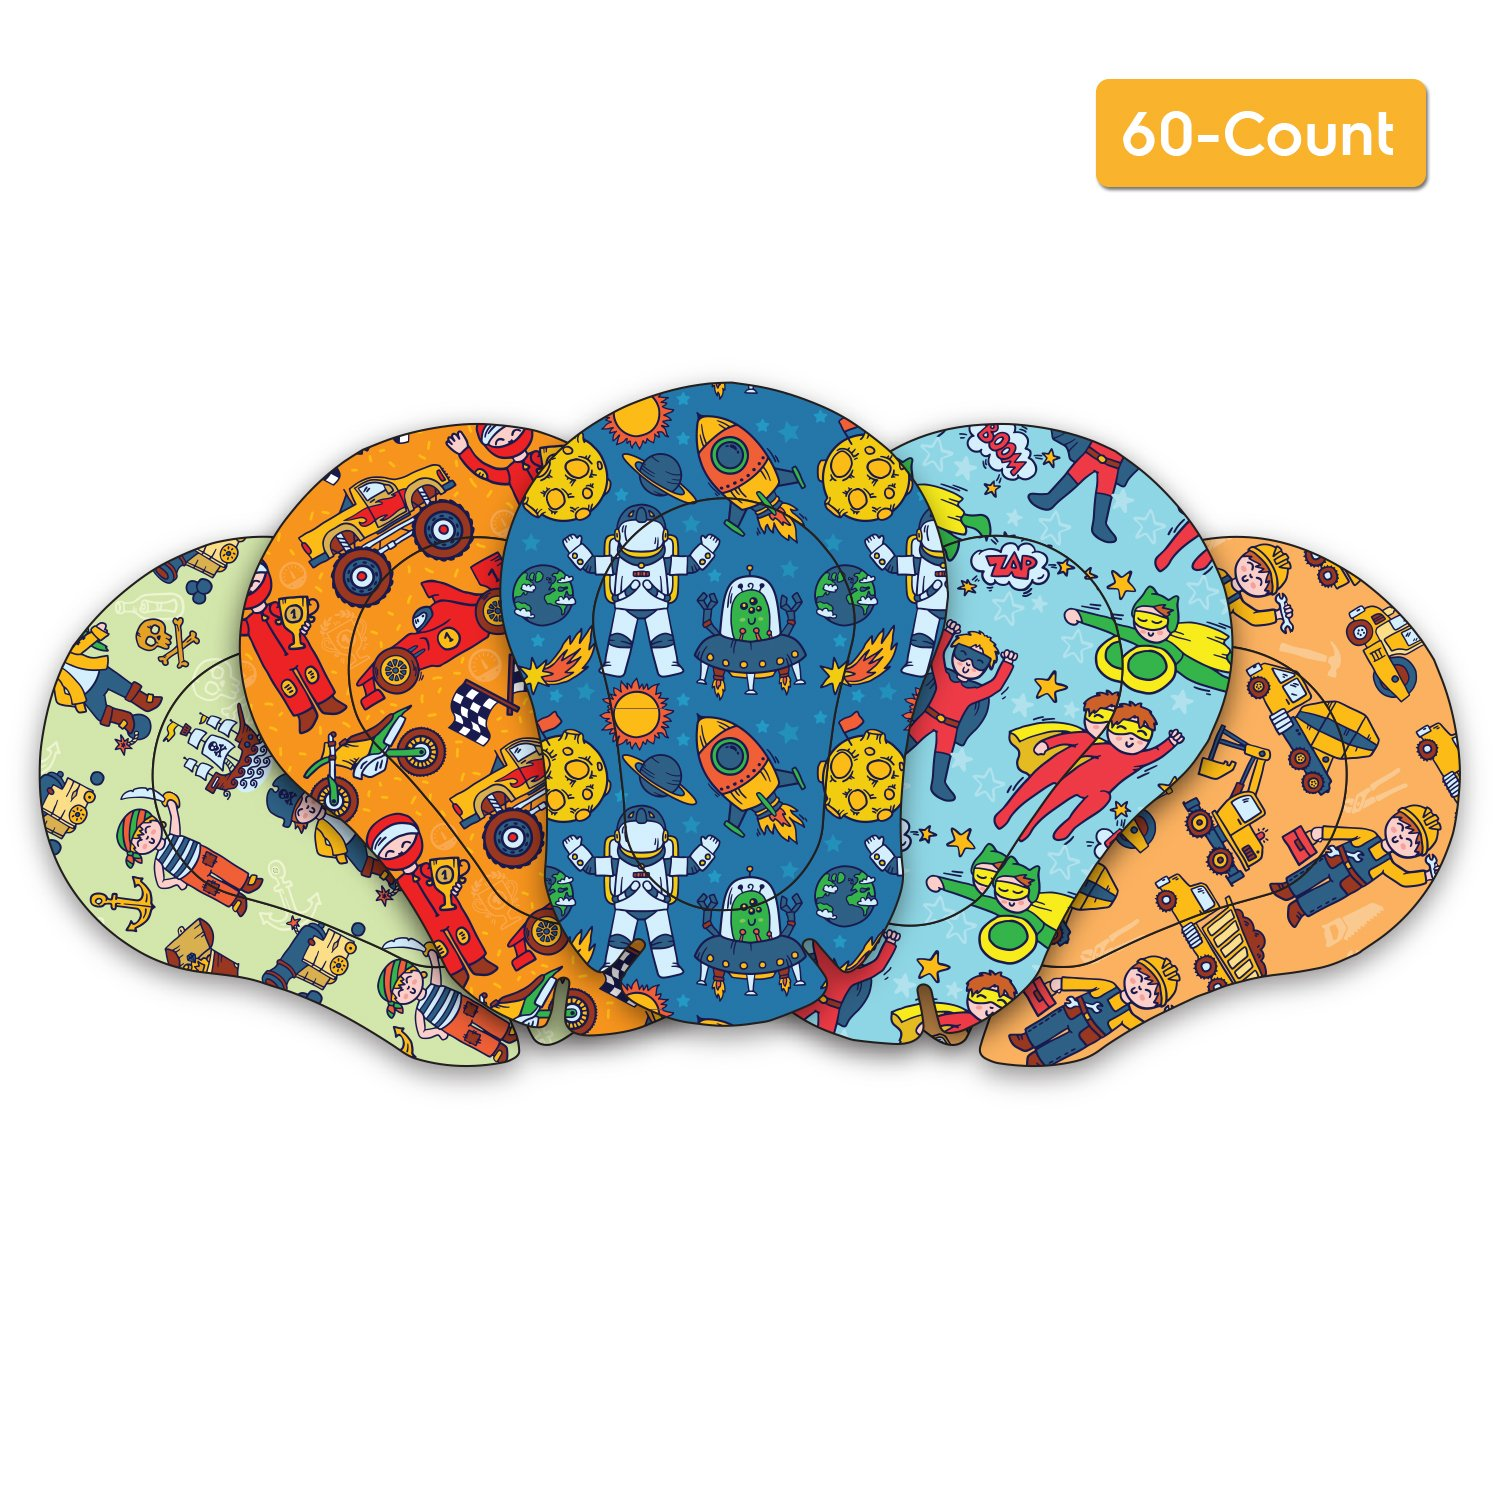 AccuMed Orthopedic Kid's Adhesive Disposable Medical Eye Patch Bandages with 5 Different Designs for Boys in Regular size for Lazy Eye, Amblyopia or Opticlude (2 Boxes, 30 per Box) (60 Count)